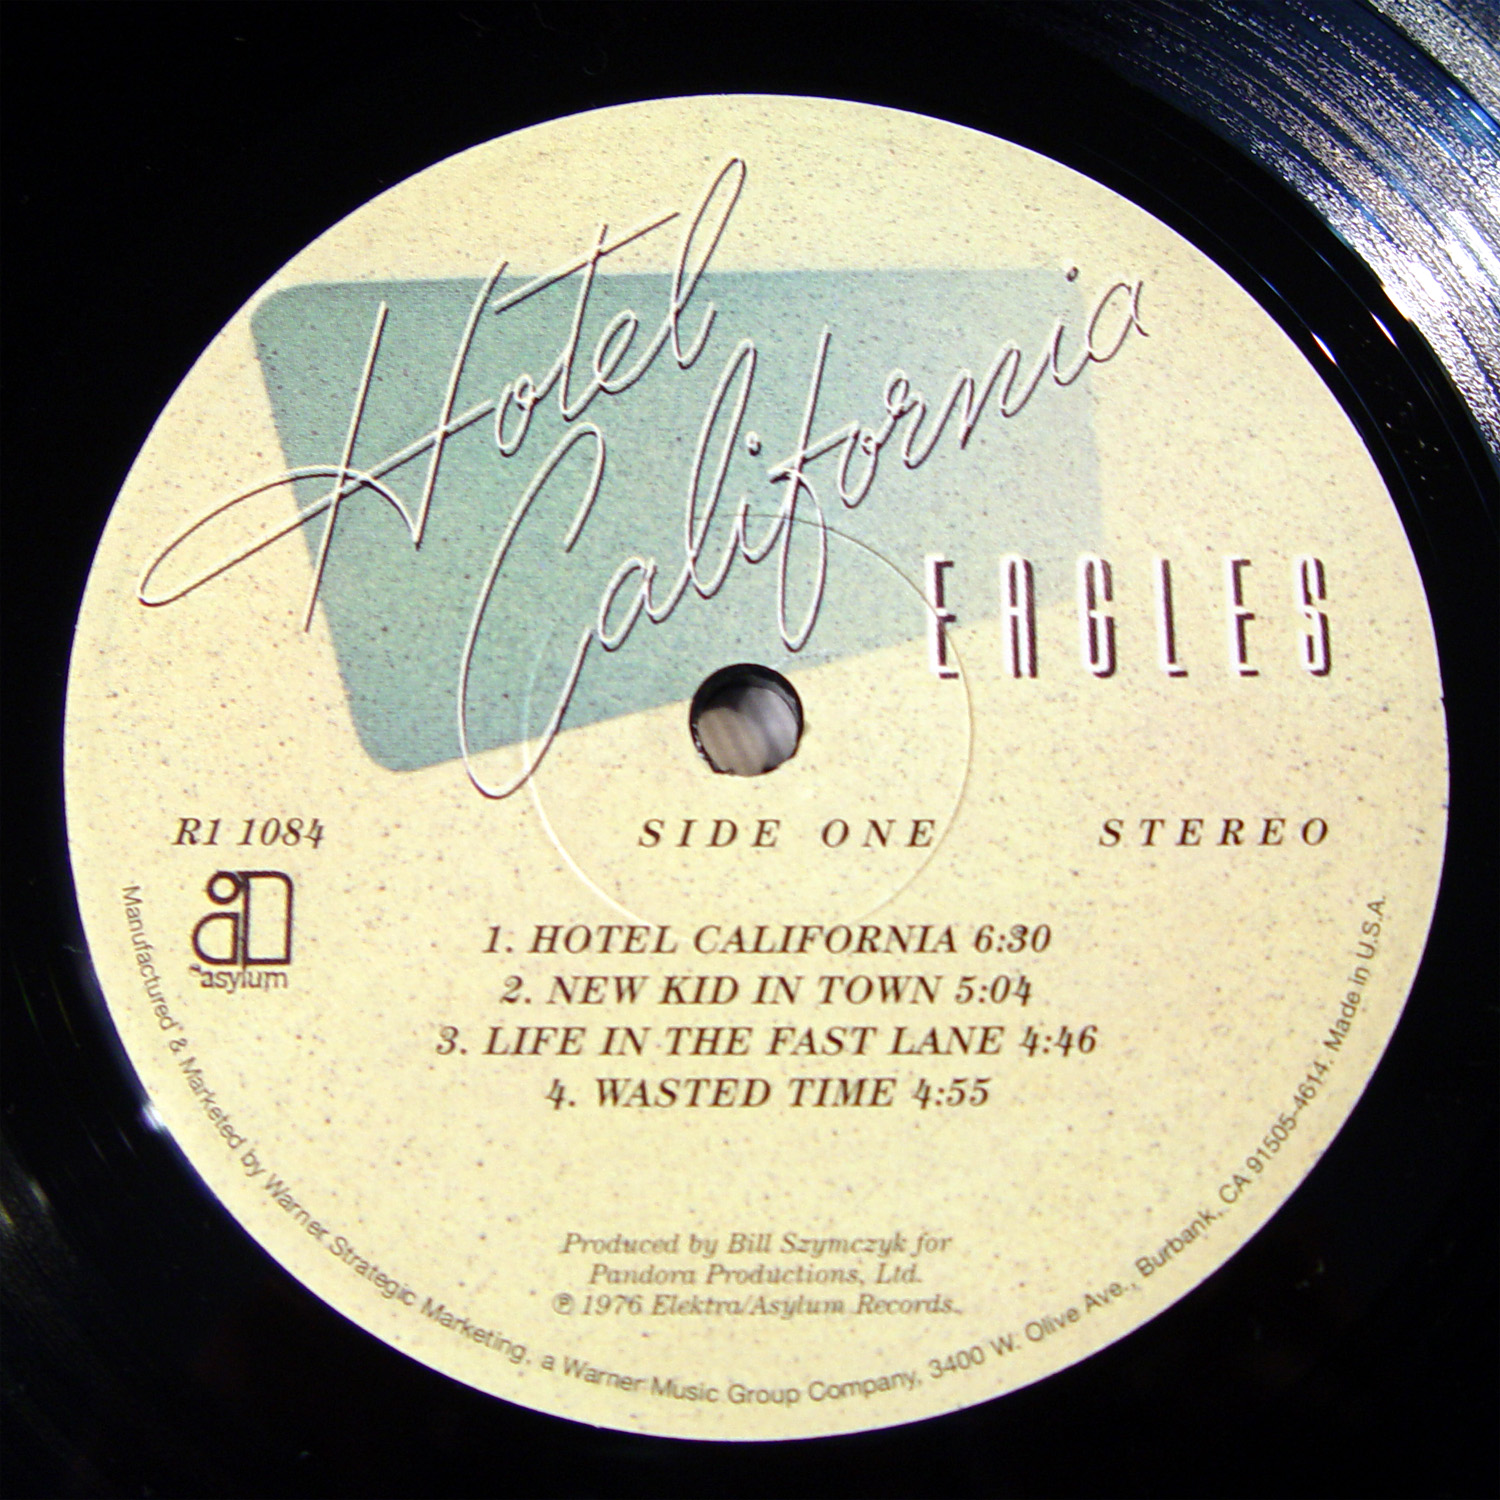 Eagles Hotel California label A